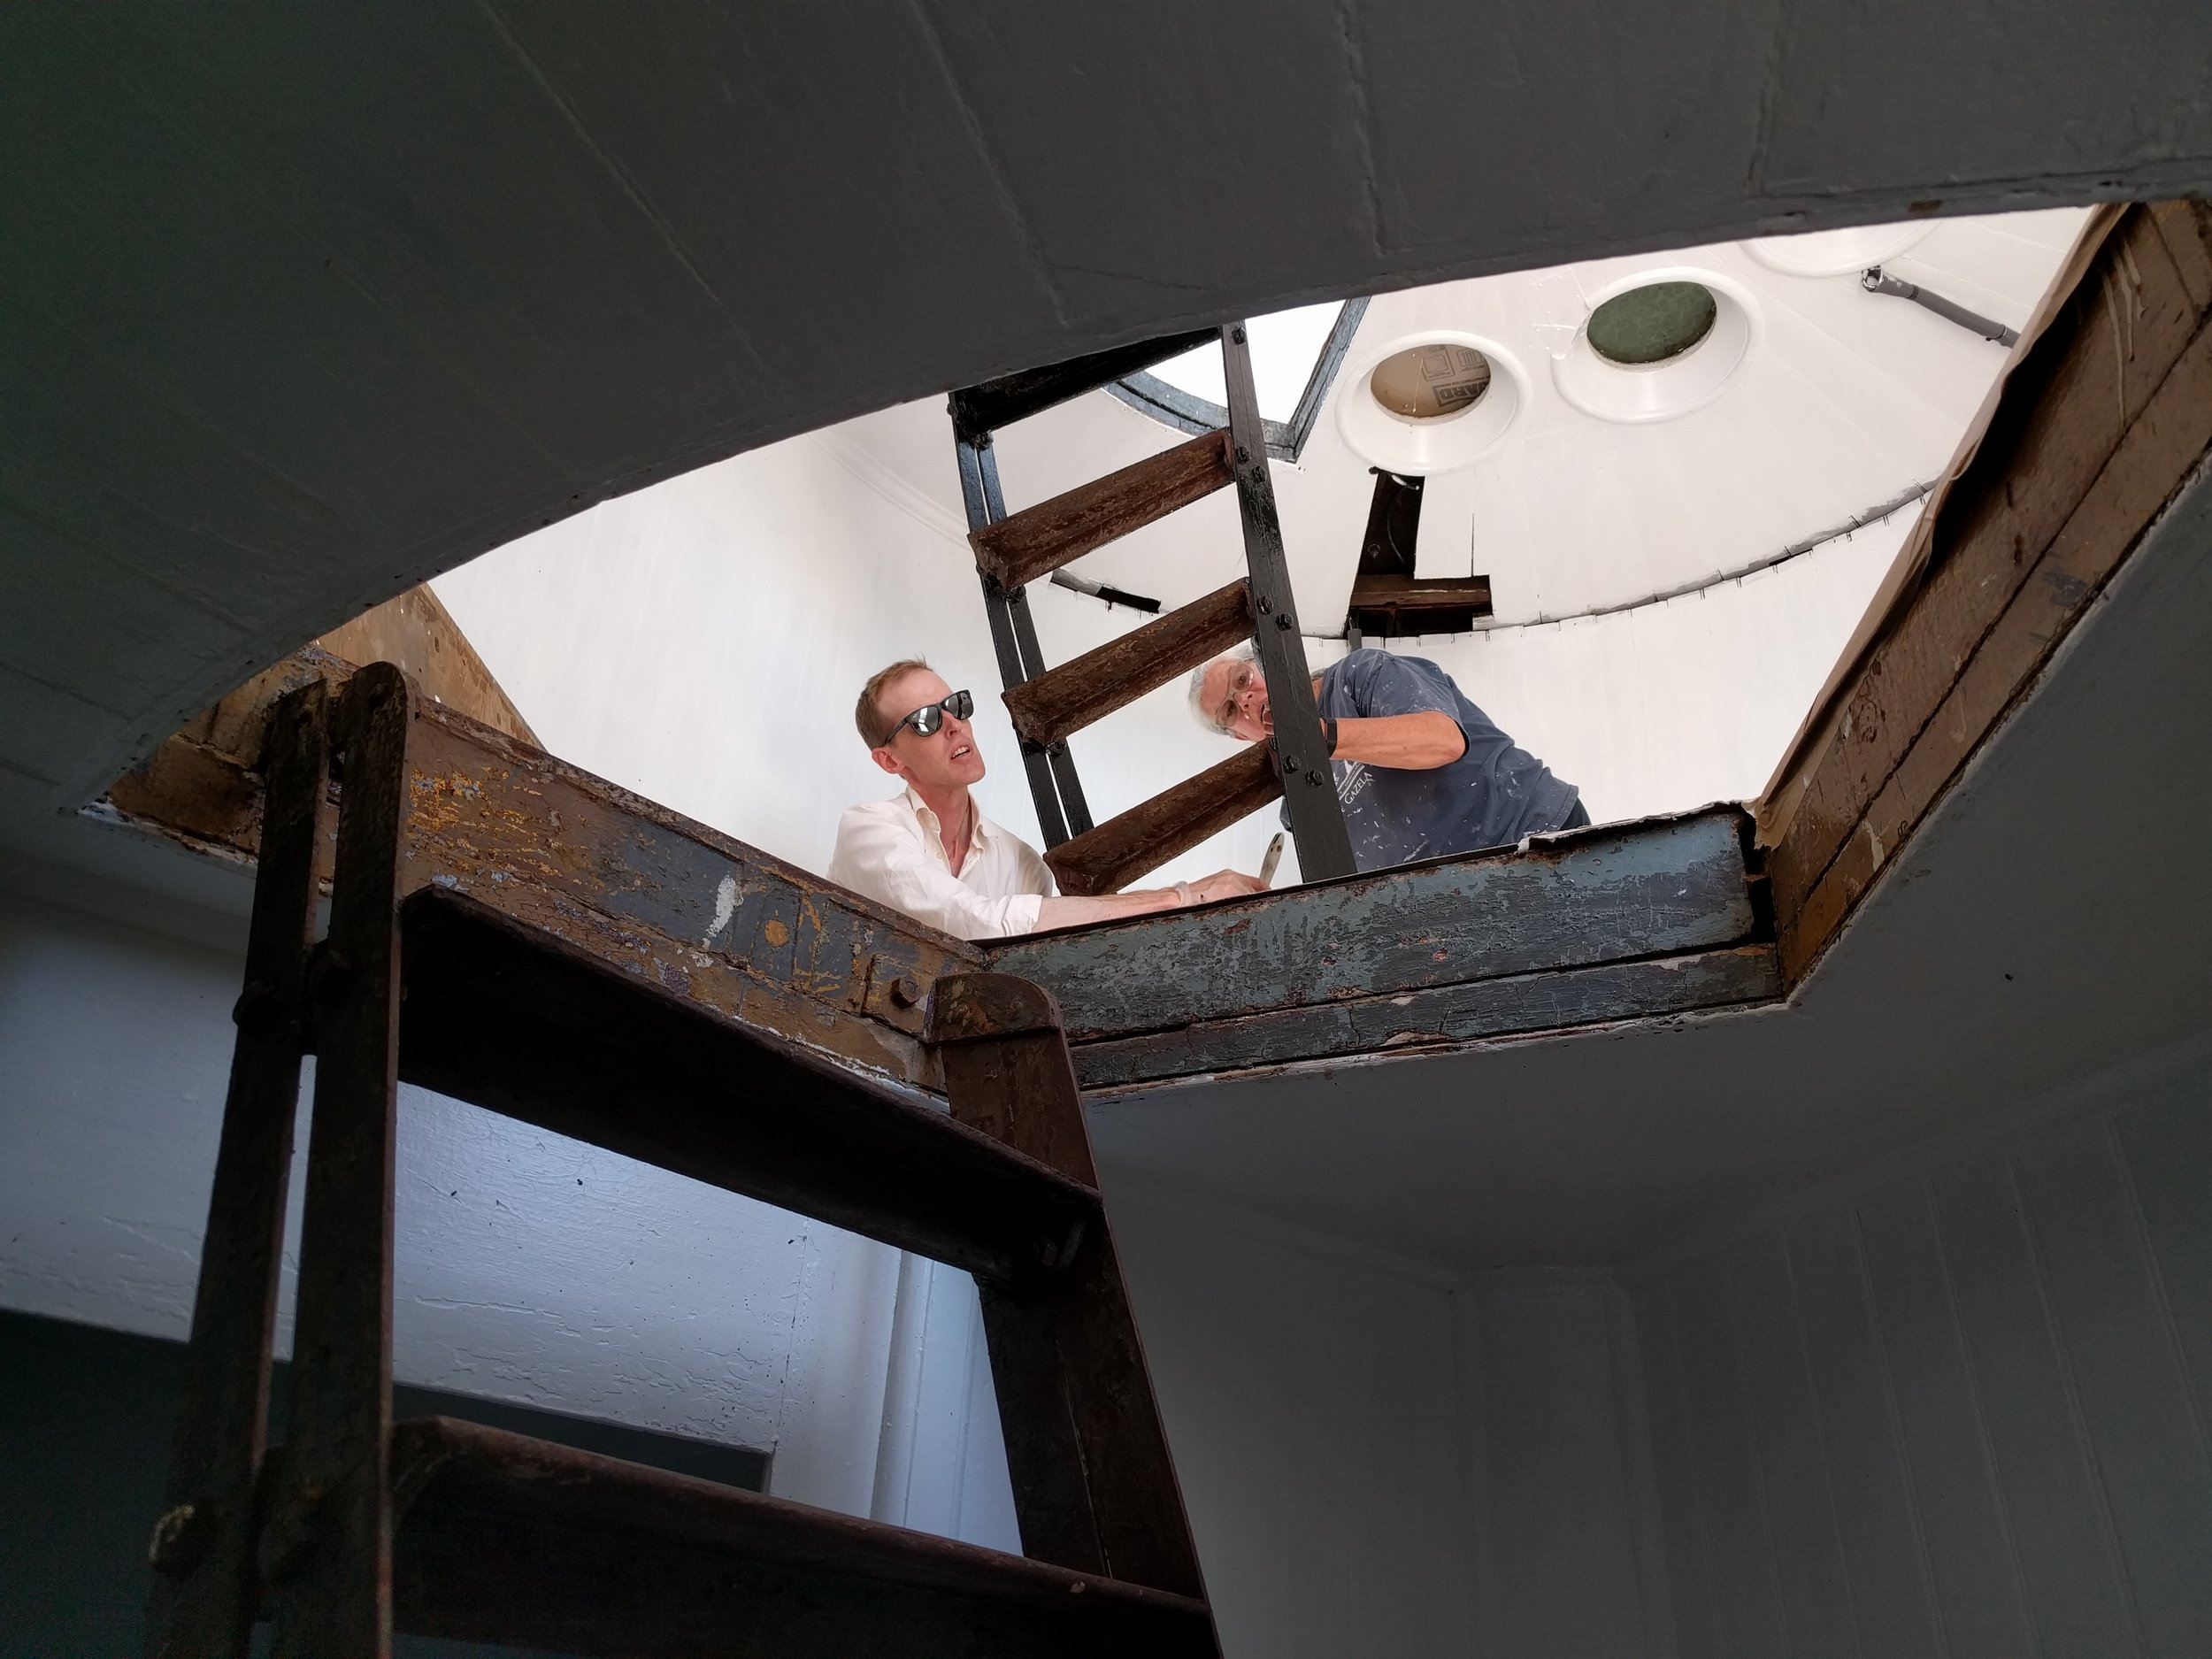 Eileen and Stefan apply the first coat of black paint to the ladder from the Watch Gallery to the Lantern Gallery.